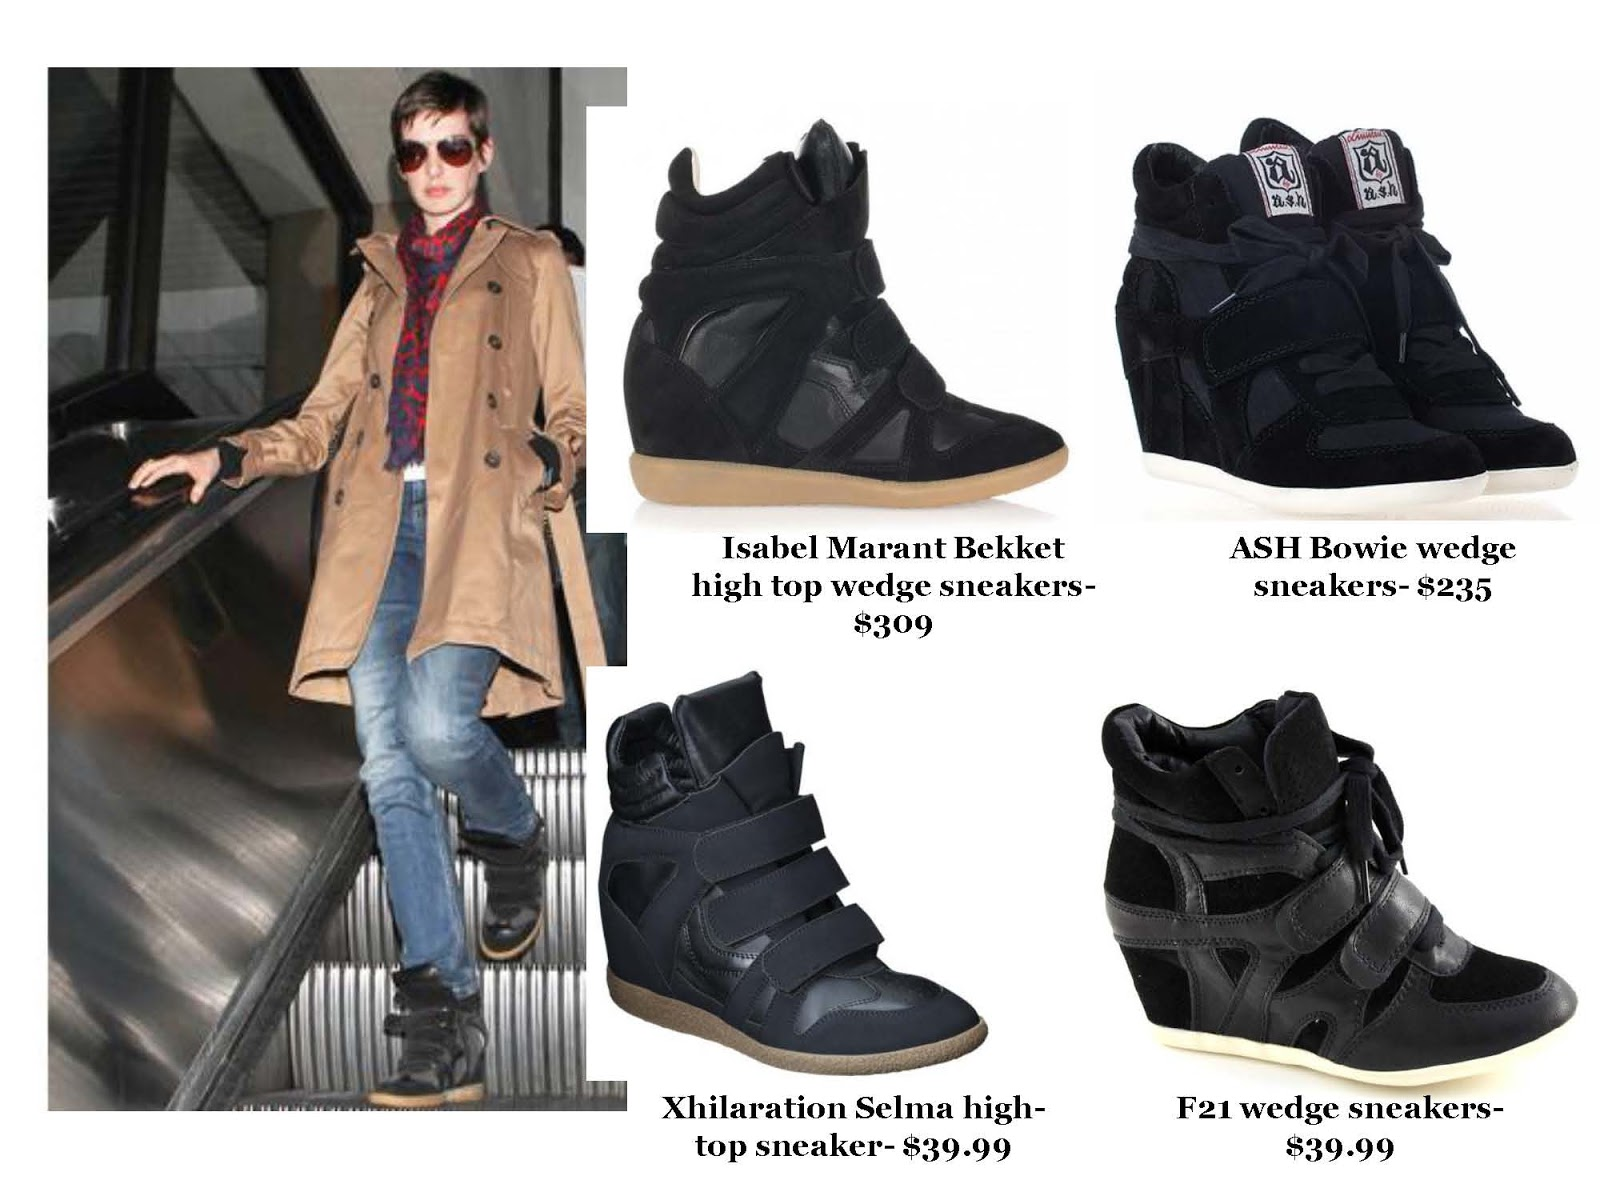 e5559a2d7c3 Modish Means  Trend  Wedge Sneakers